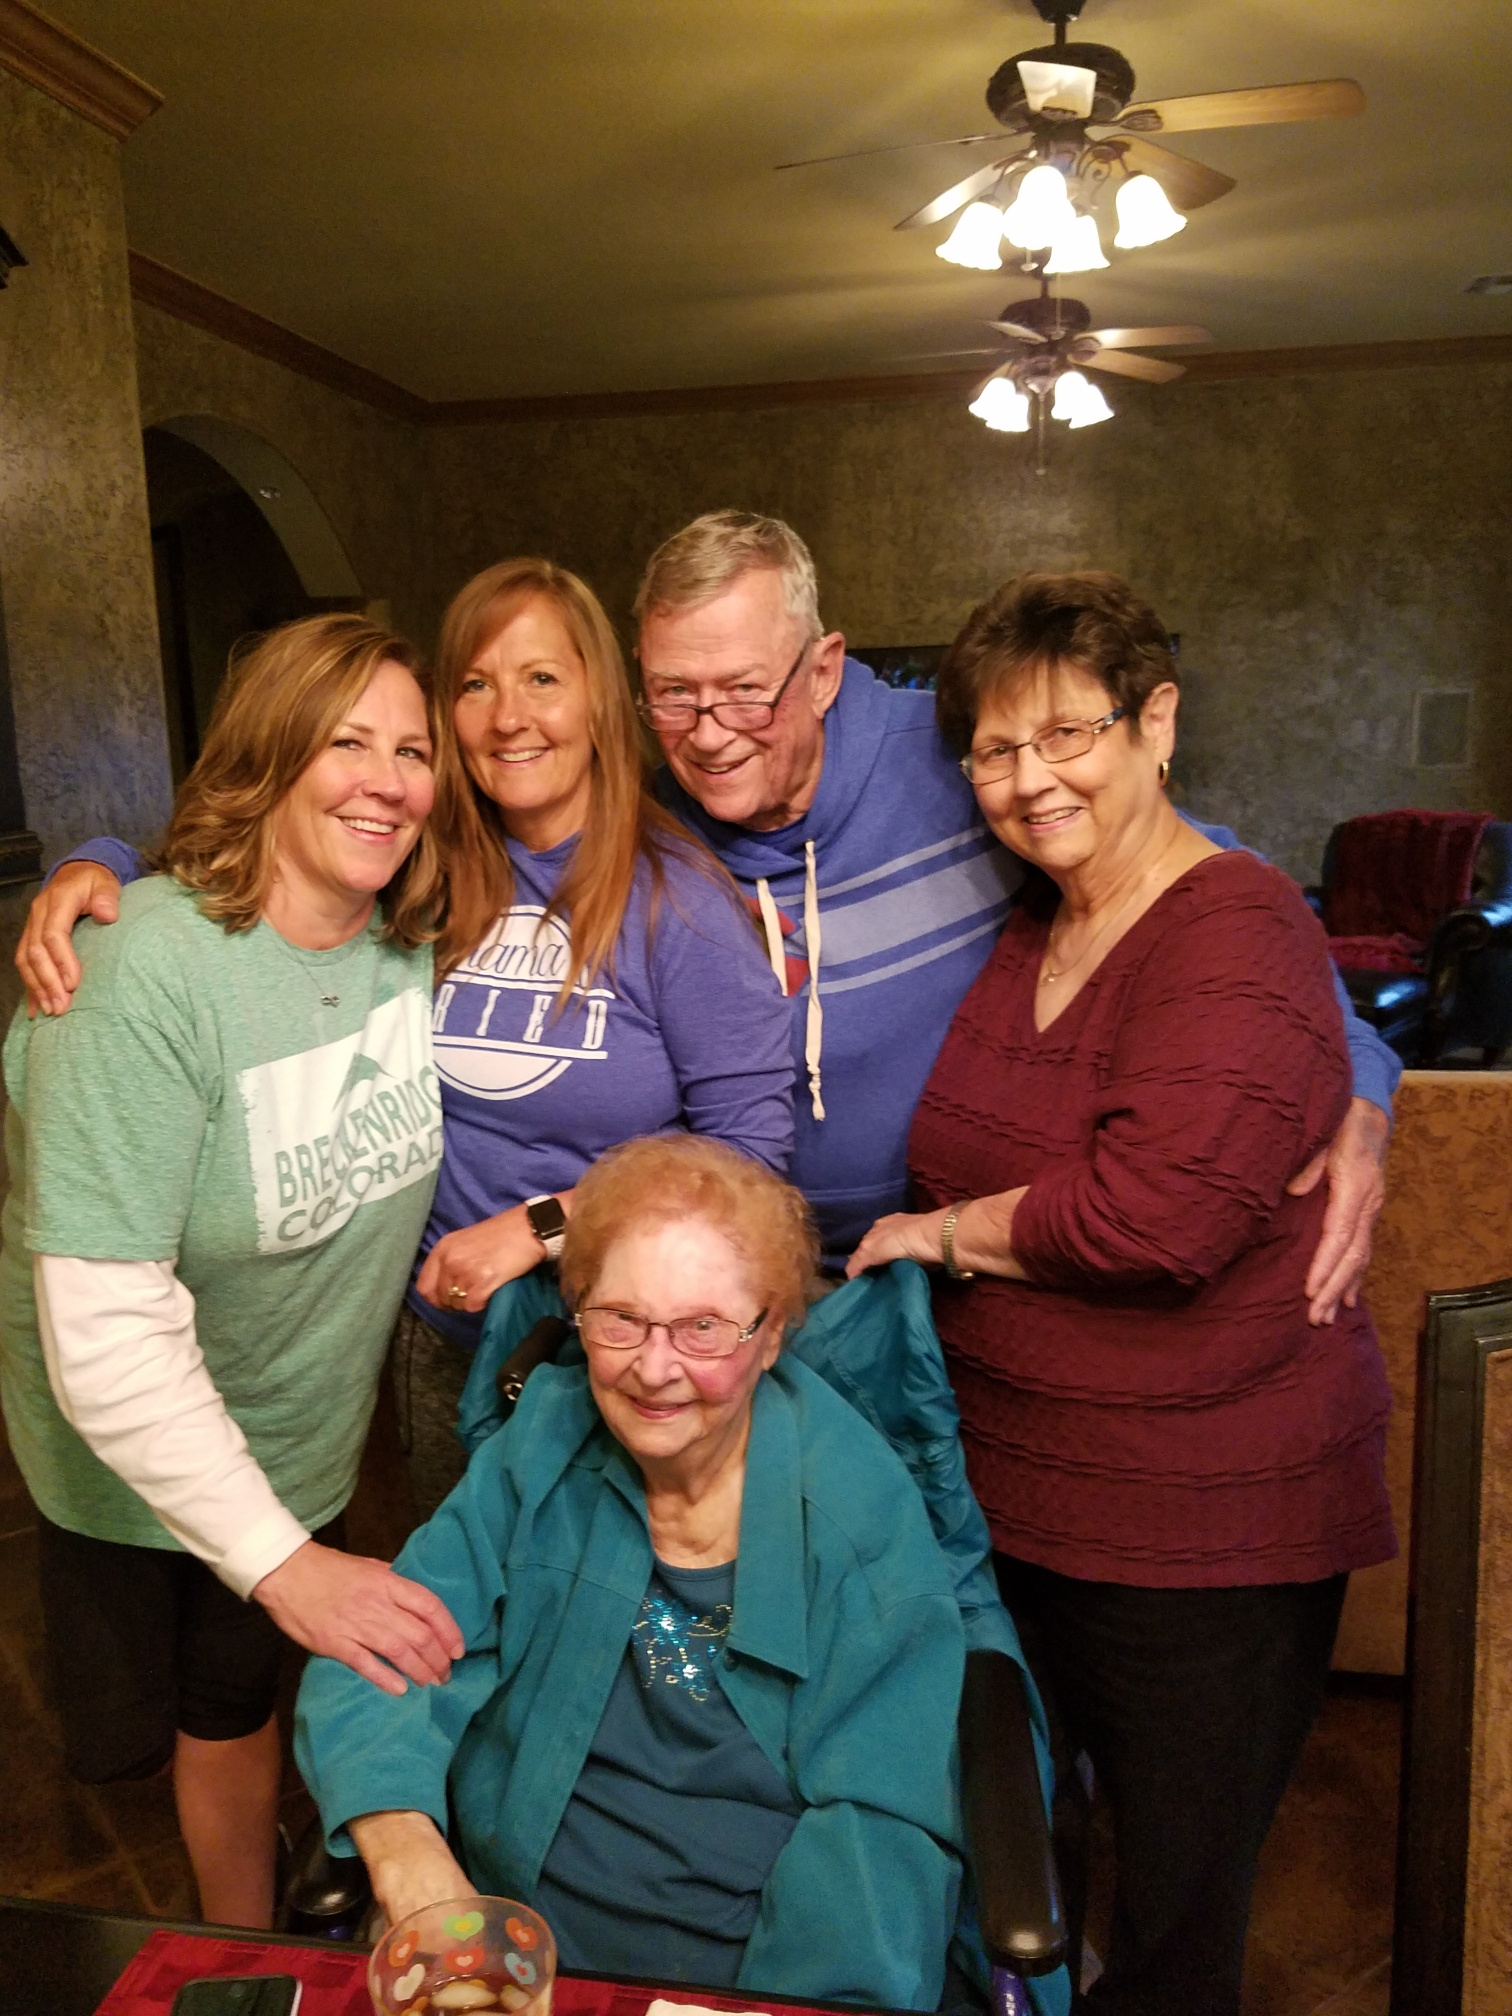 Lois and her family, from left to right; granddaughter Jennifer Forrester, granddaughter Shelley Moore, Son-in-law Eldon Forrester and daughter Linda Forrester.